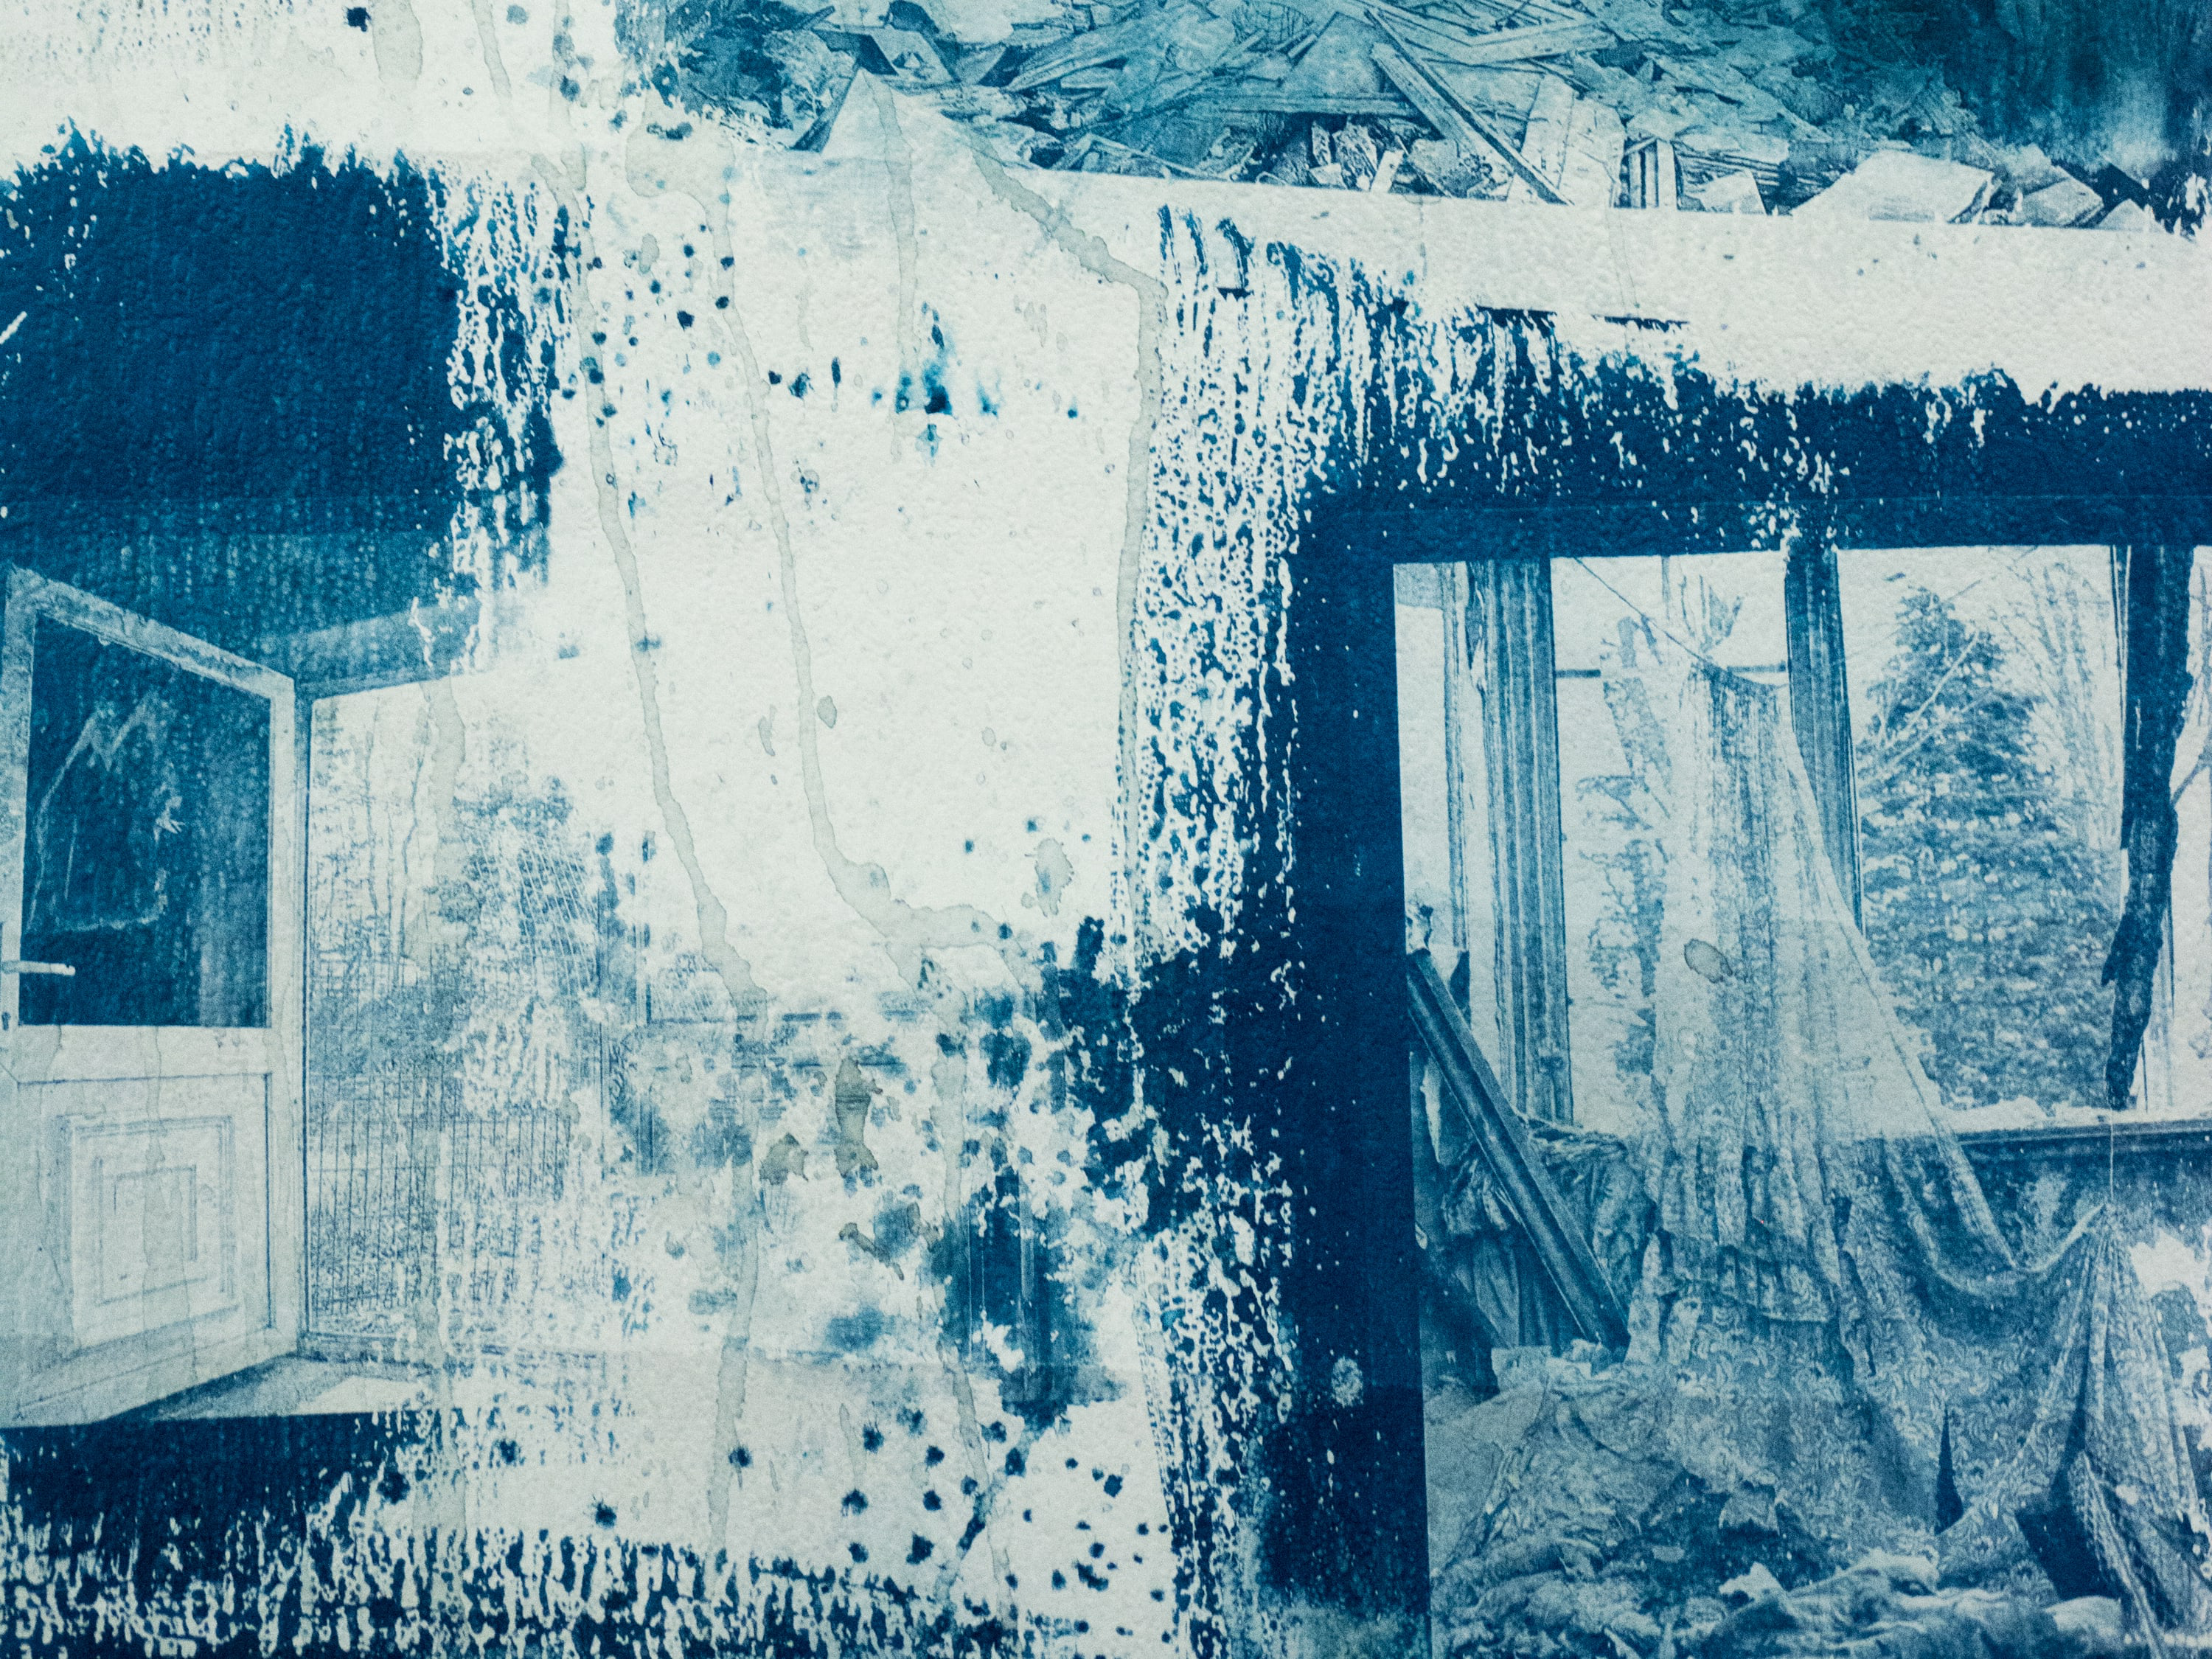 Blue and white ink 和 print on paper